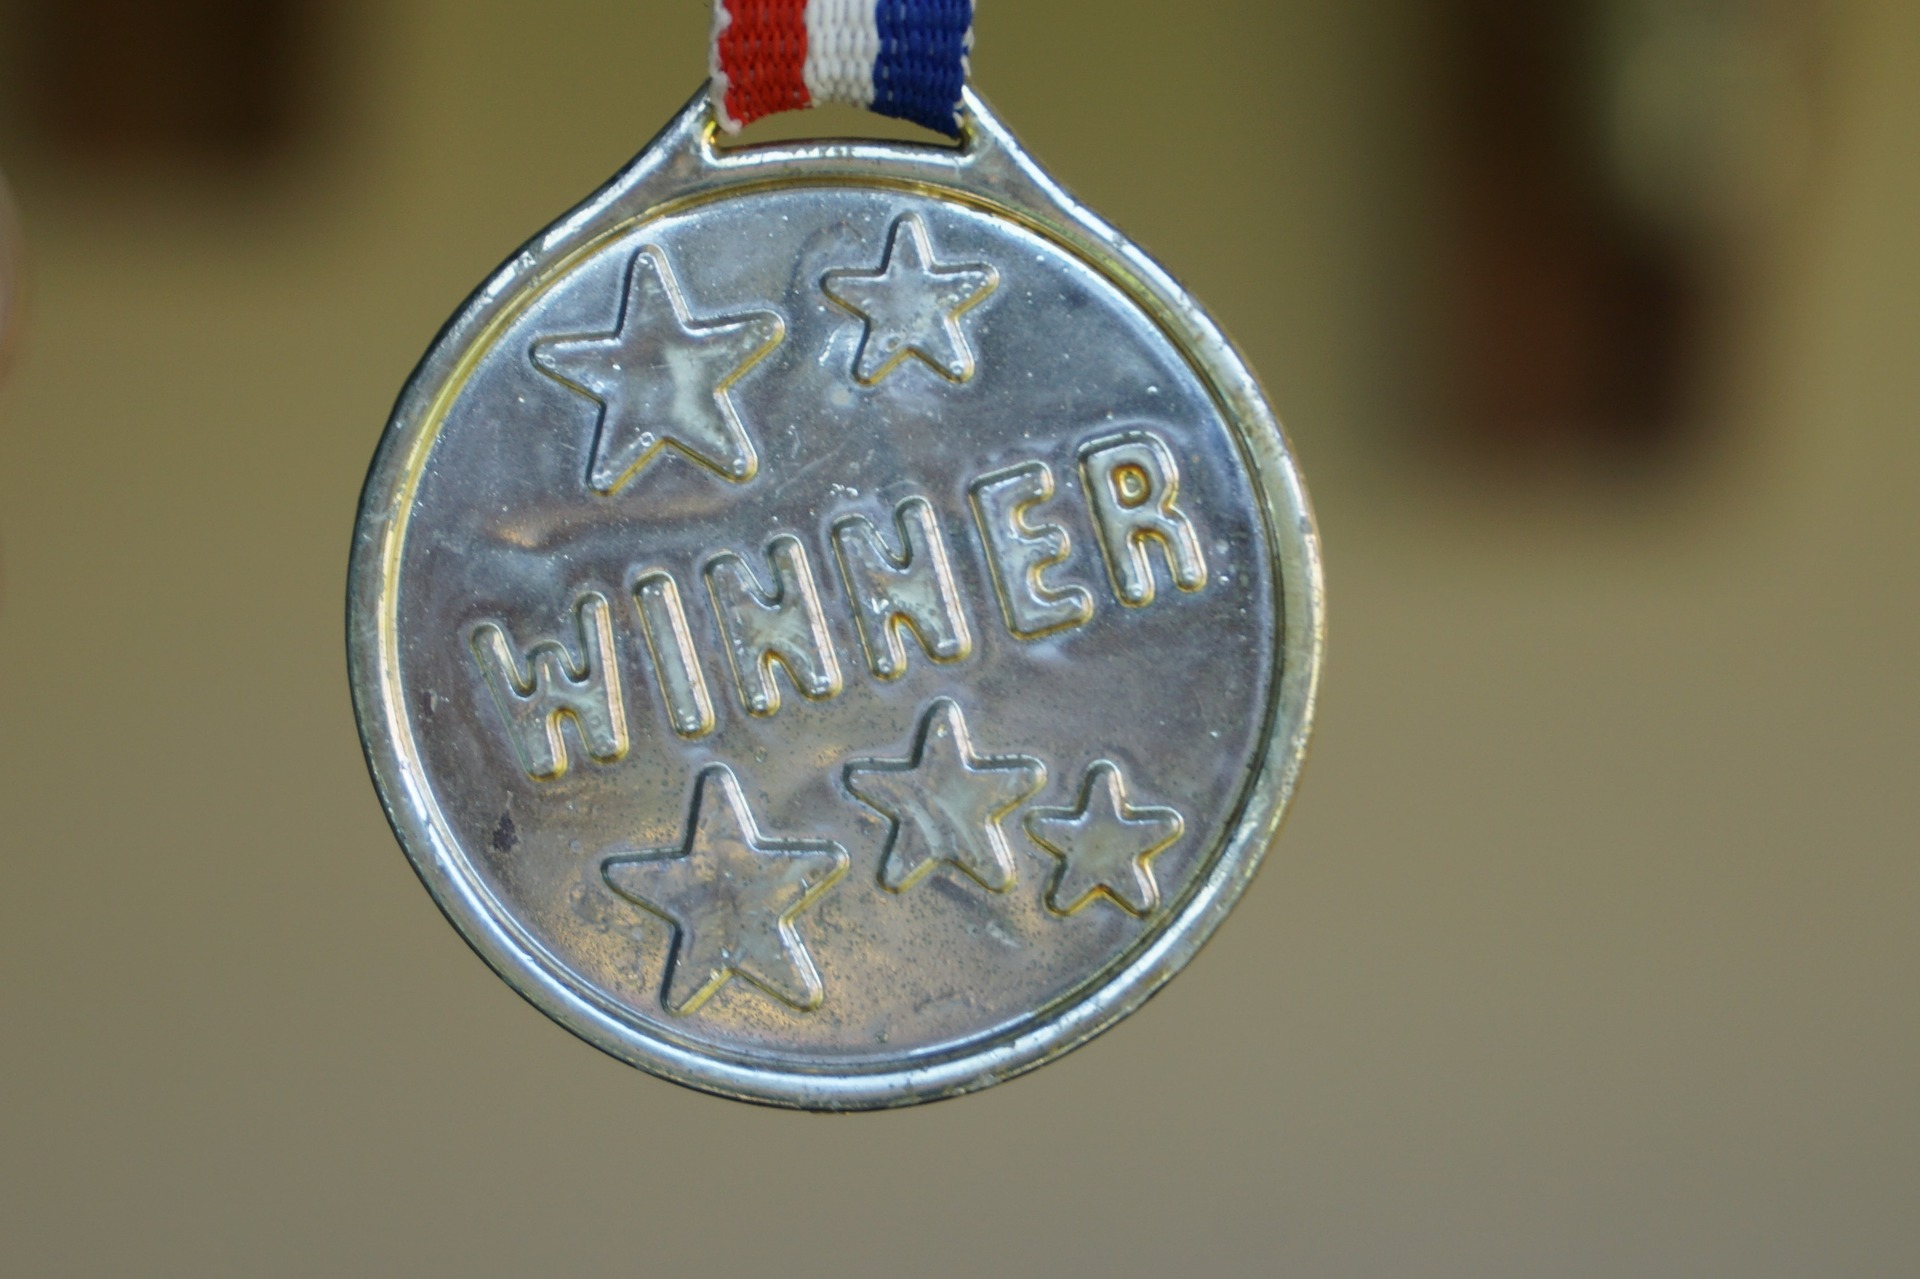 5 CLASSIFICATIONS OF AWARDS YOUR COMPANY SHOULD CONSIDER